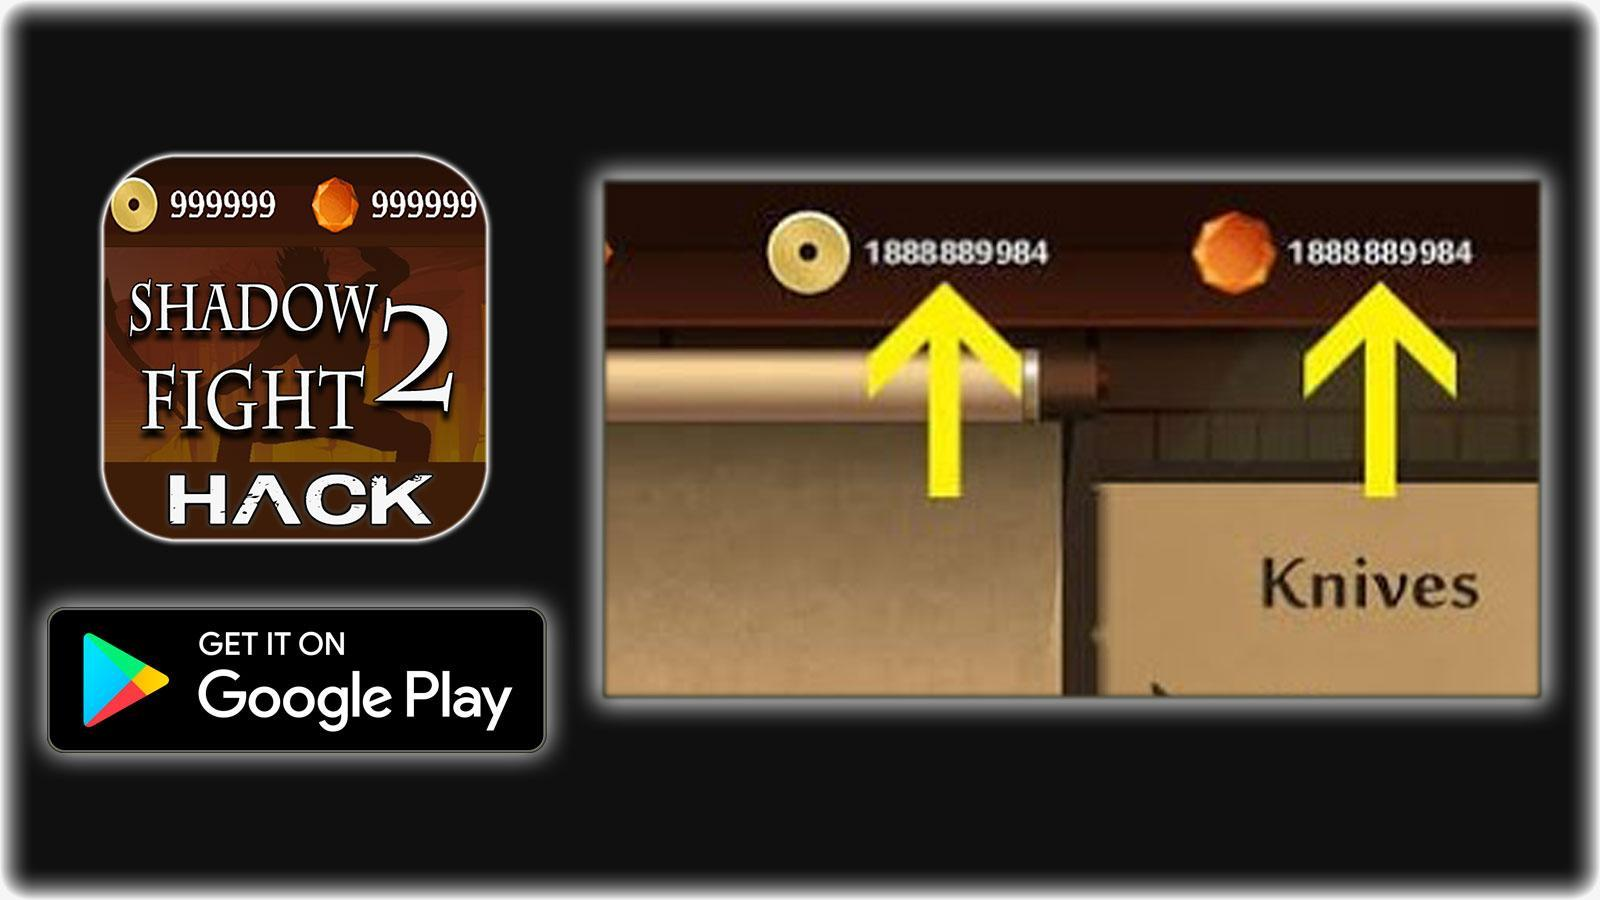 Hack For Shadow Fight 2 Cheats New Prank! for Android - APK Download